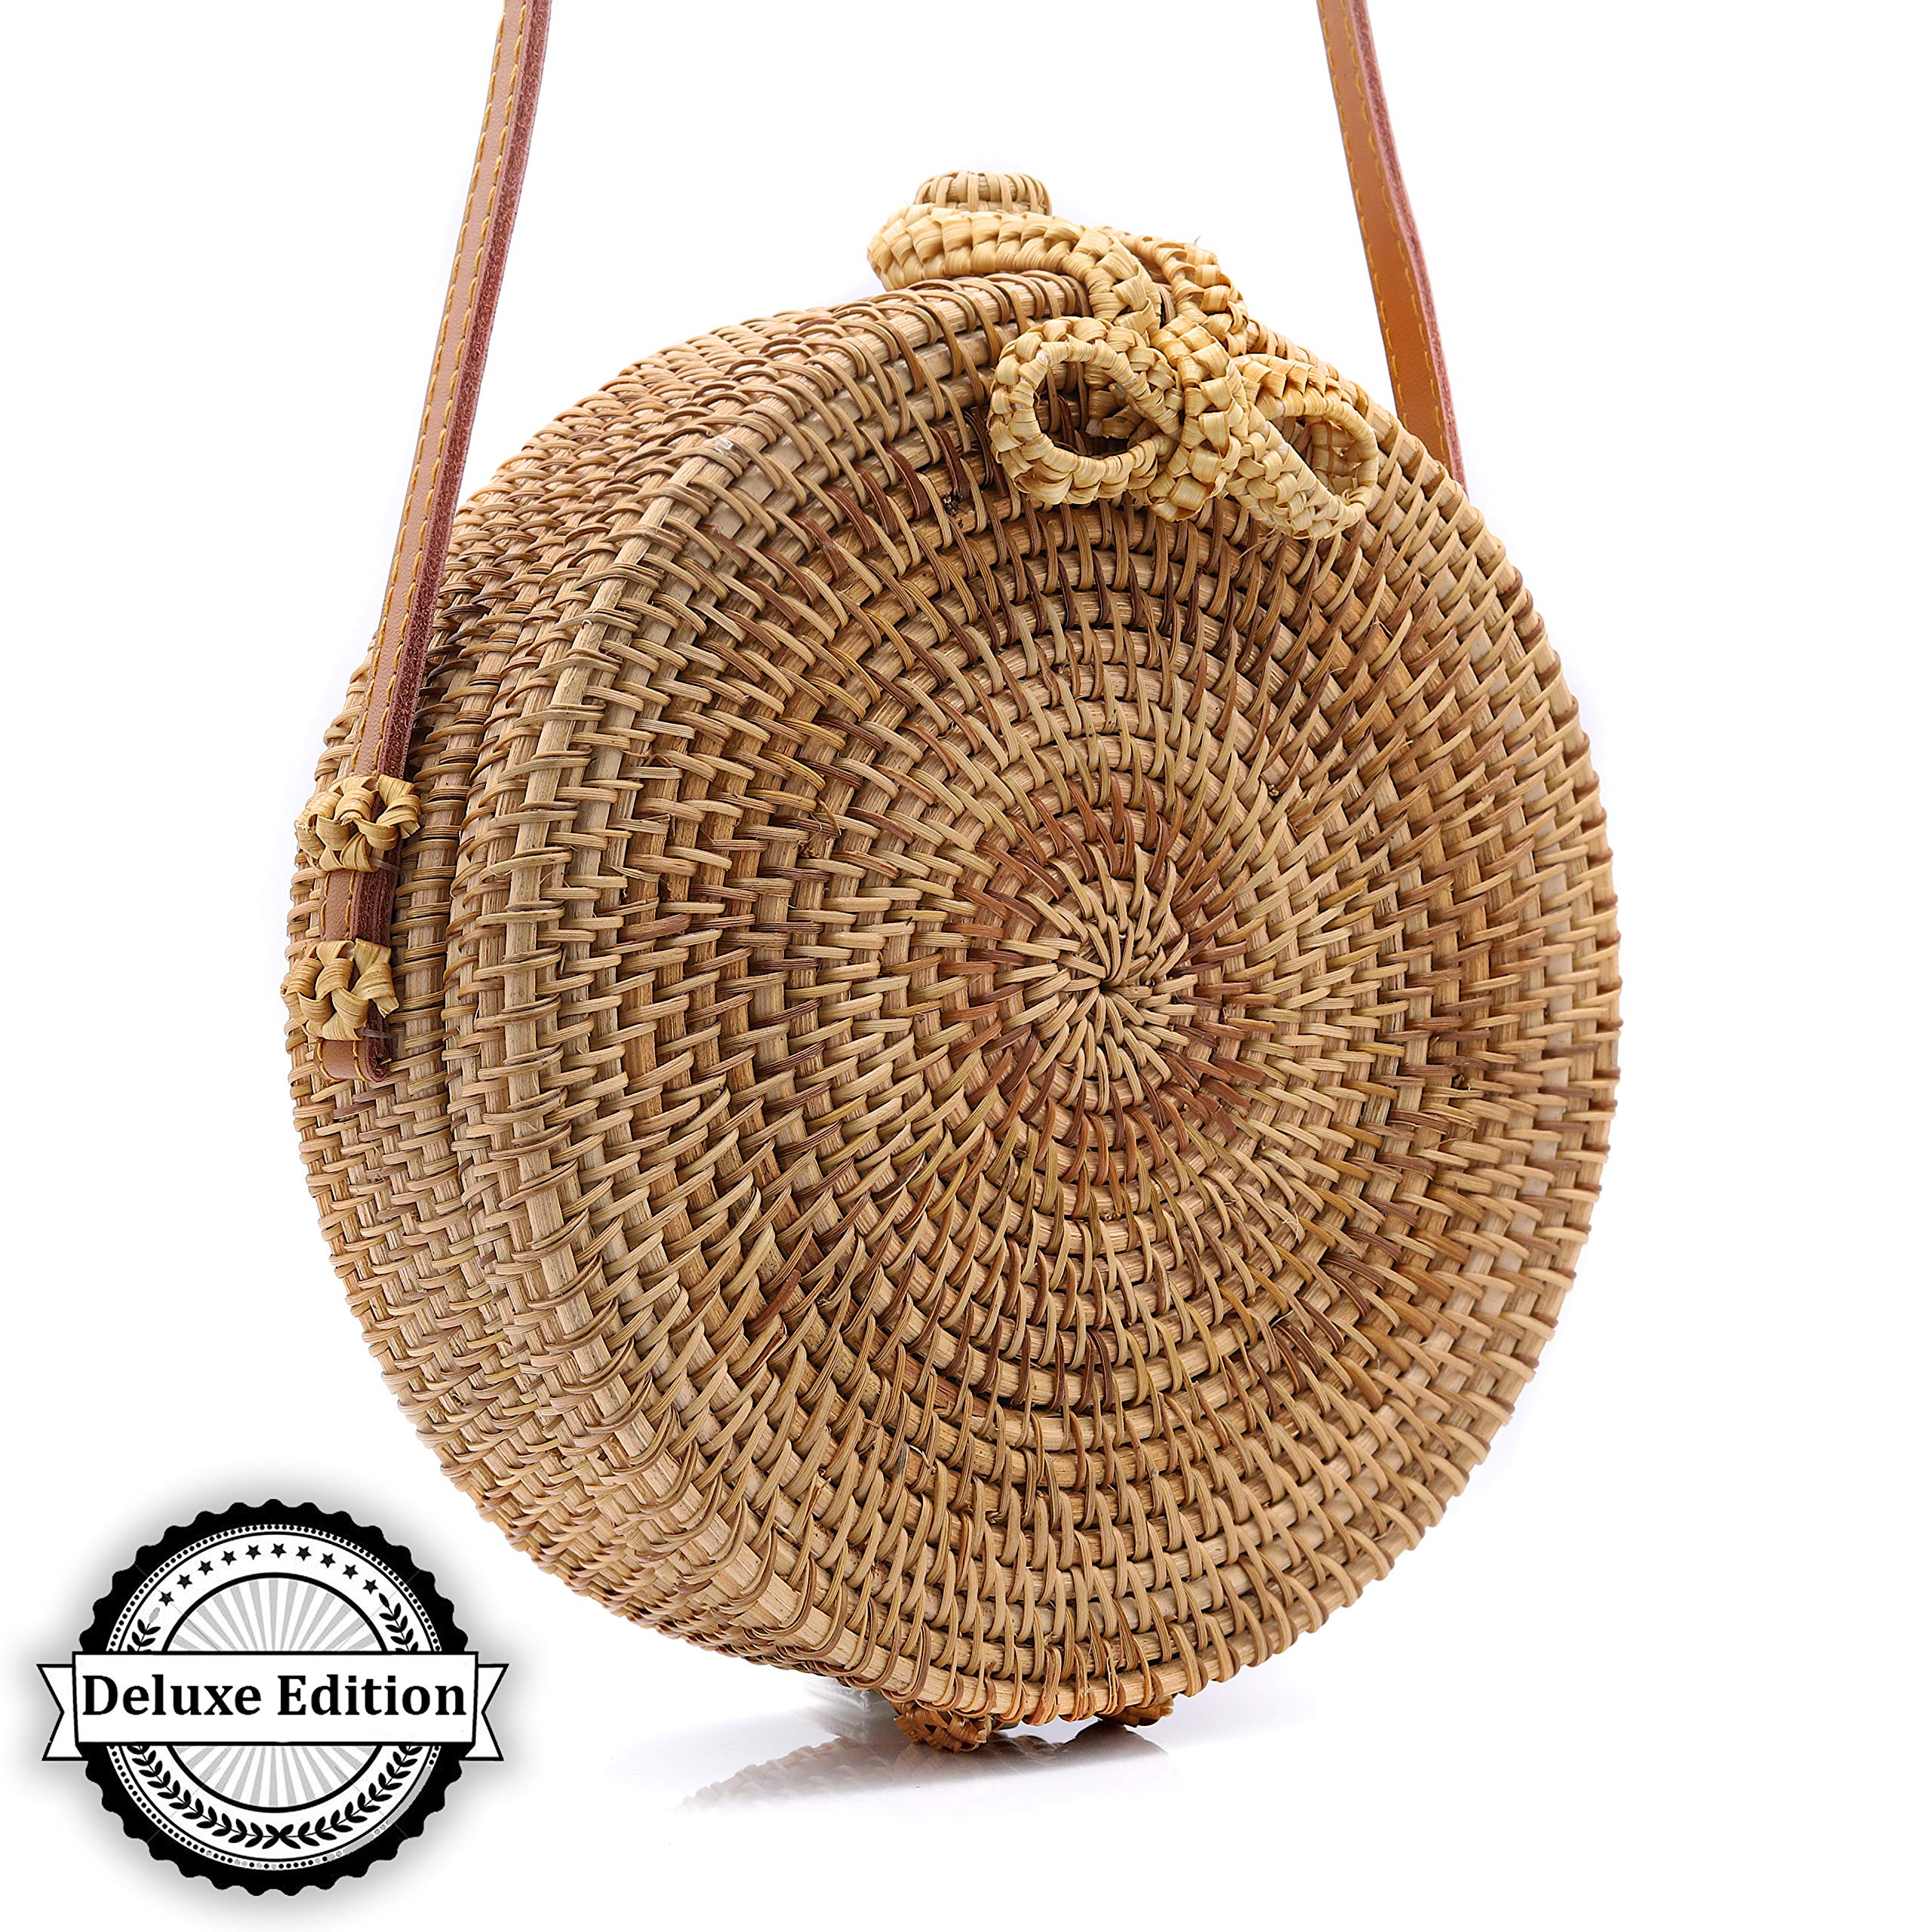 RATTAN NATURALS Handwoven Round Rattan Crossbody Bag| DELUXE EDITION | Round Straw Bag for Women | Genuine 100% Leather Shoulder straps | Straw purse For Women | Boho bag | Straw Handbag for Women by Rattan Naturals (Image #9)